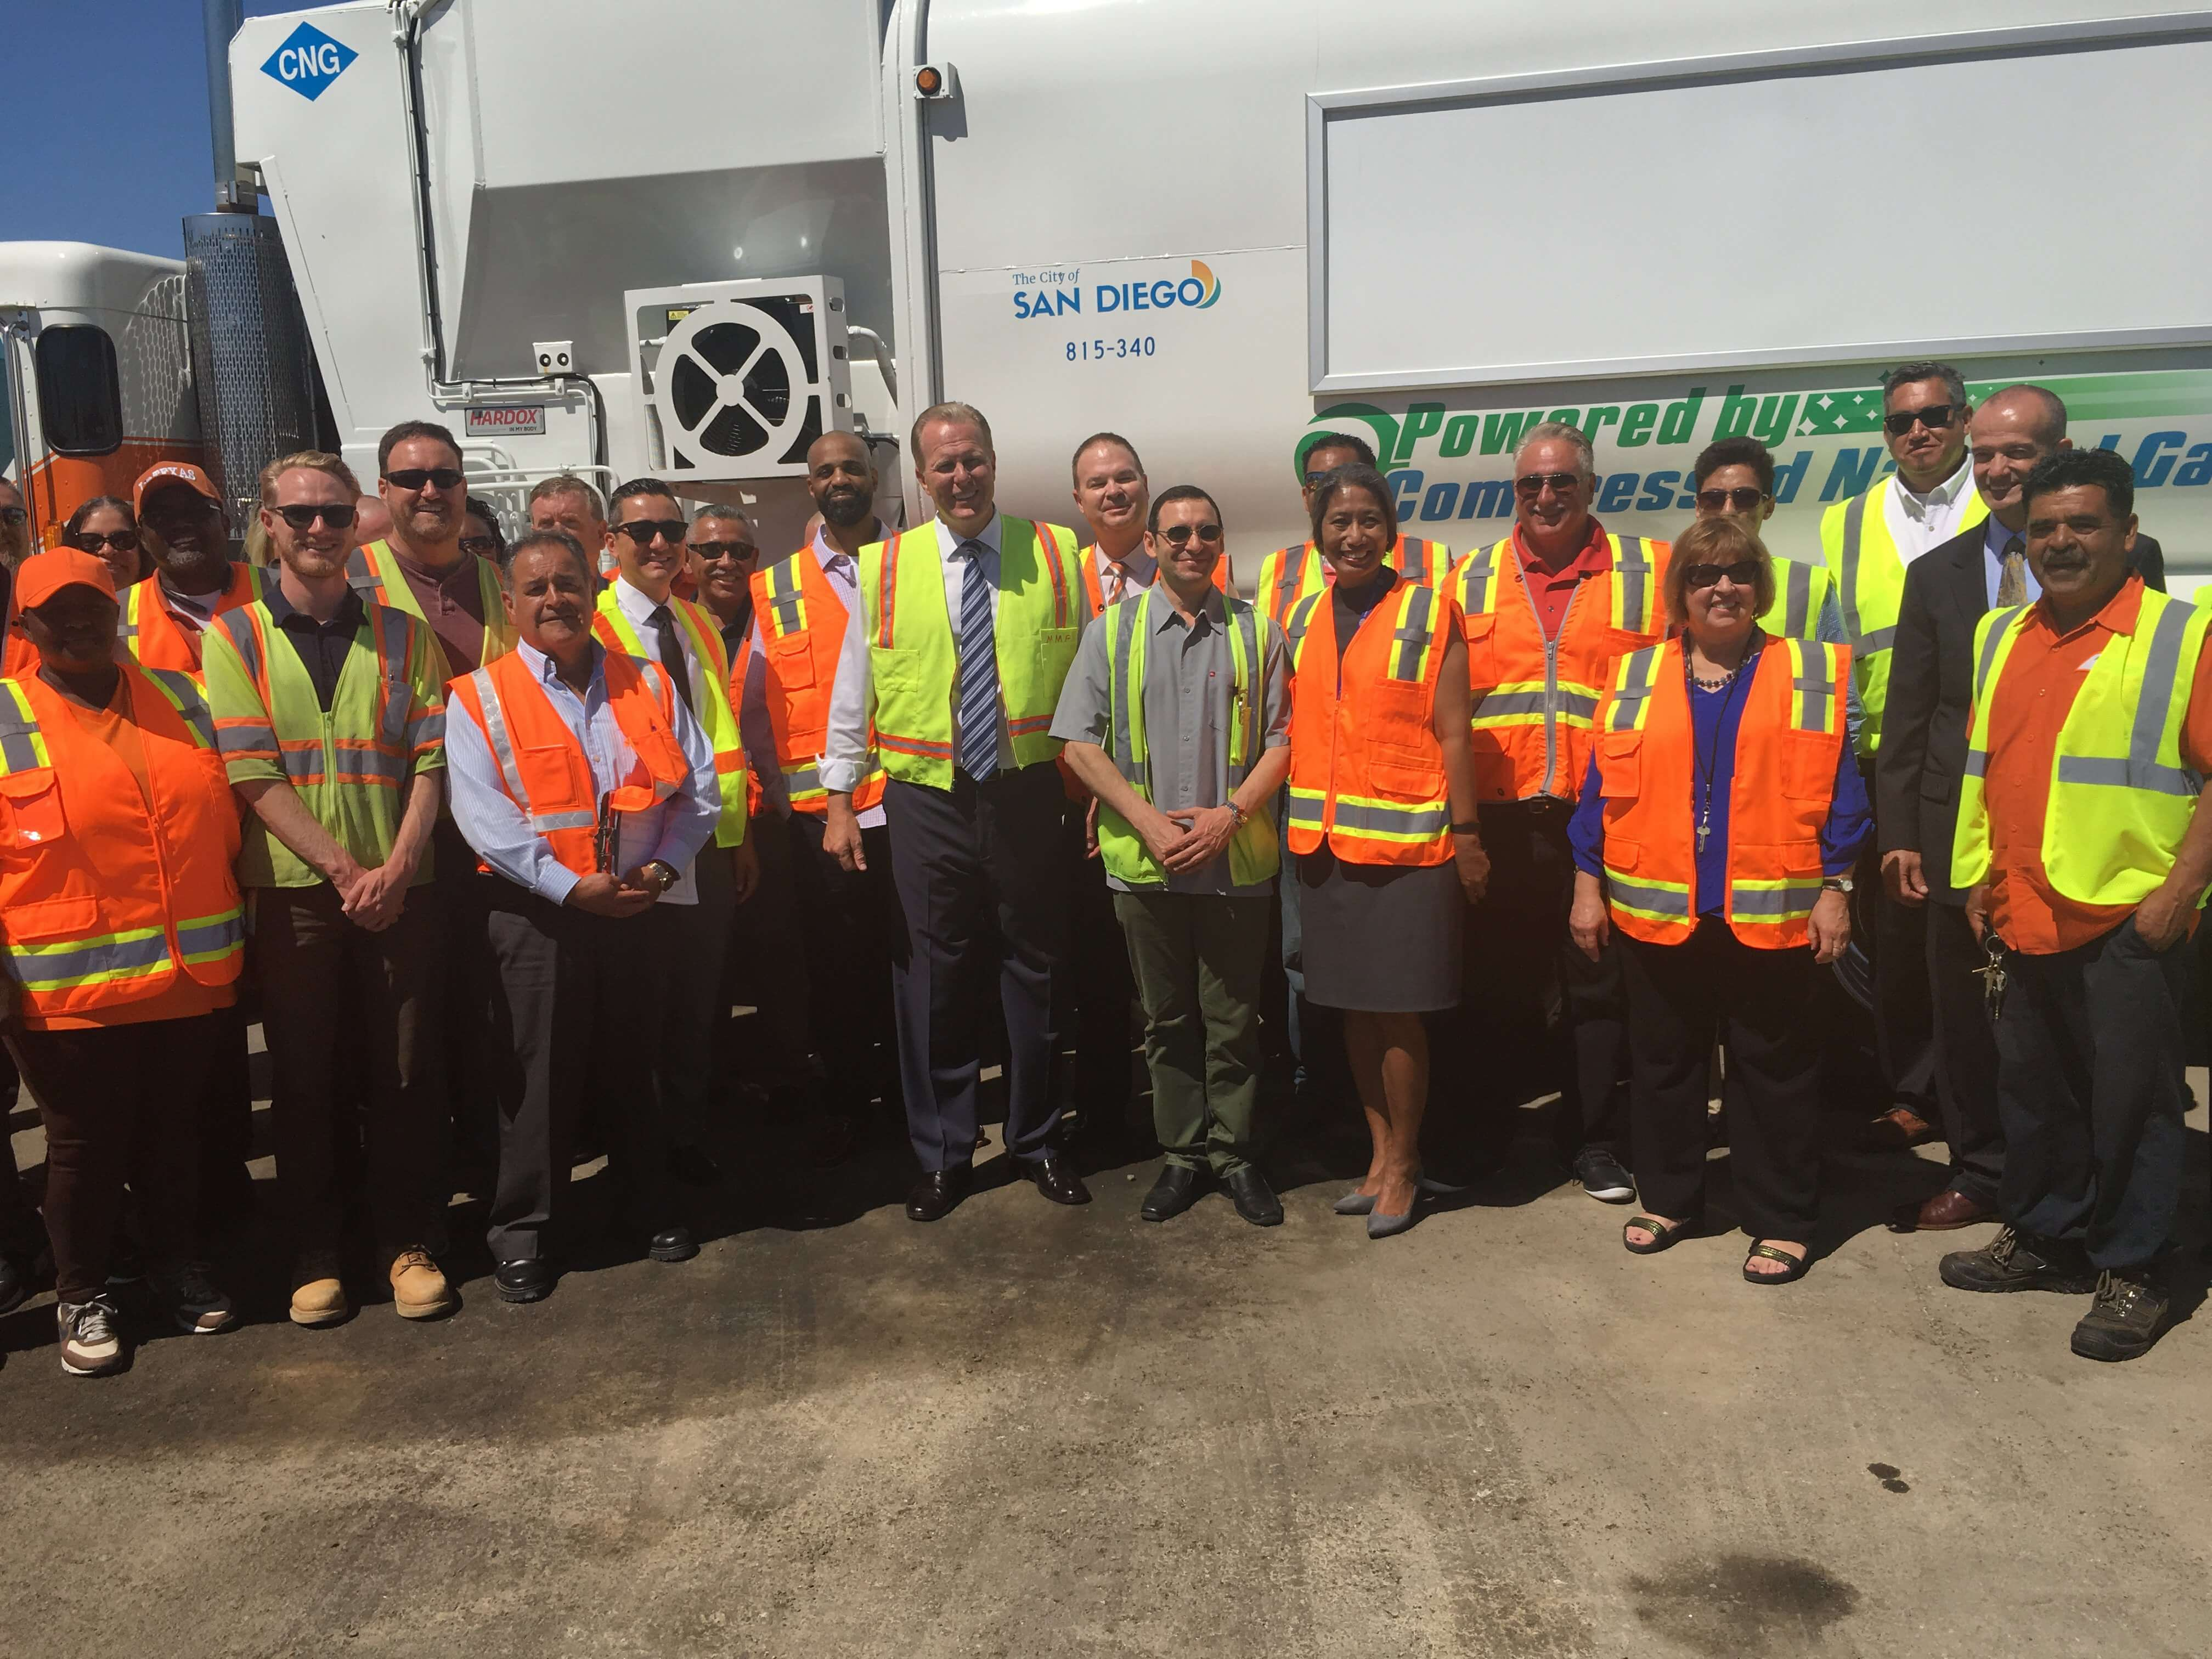 San Diego Makes Progress on Major Plans for CNG Truck ...